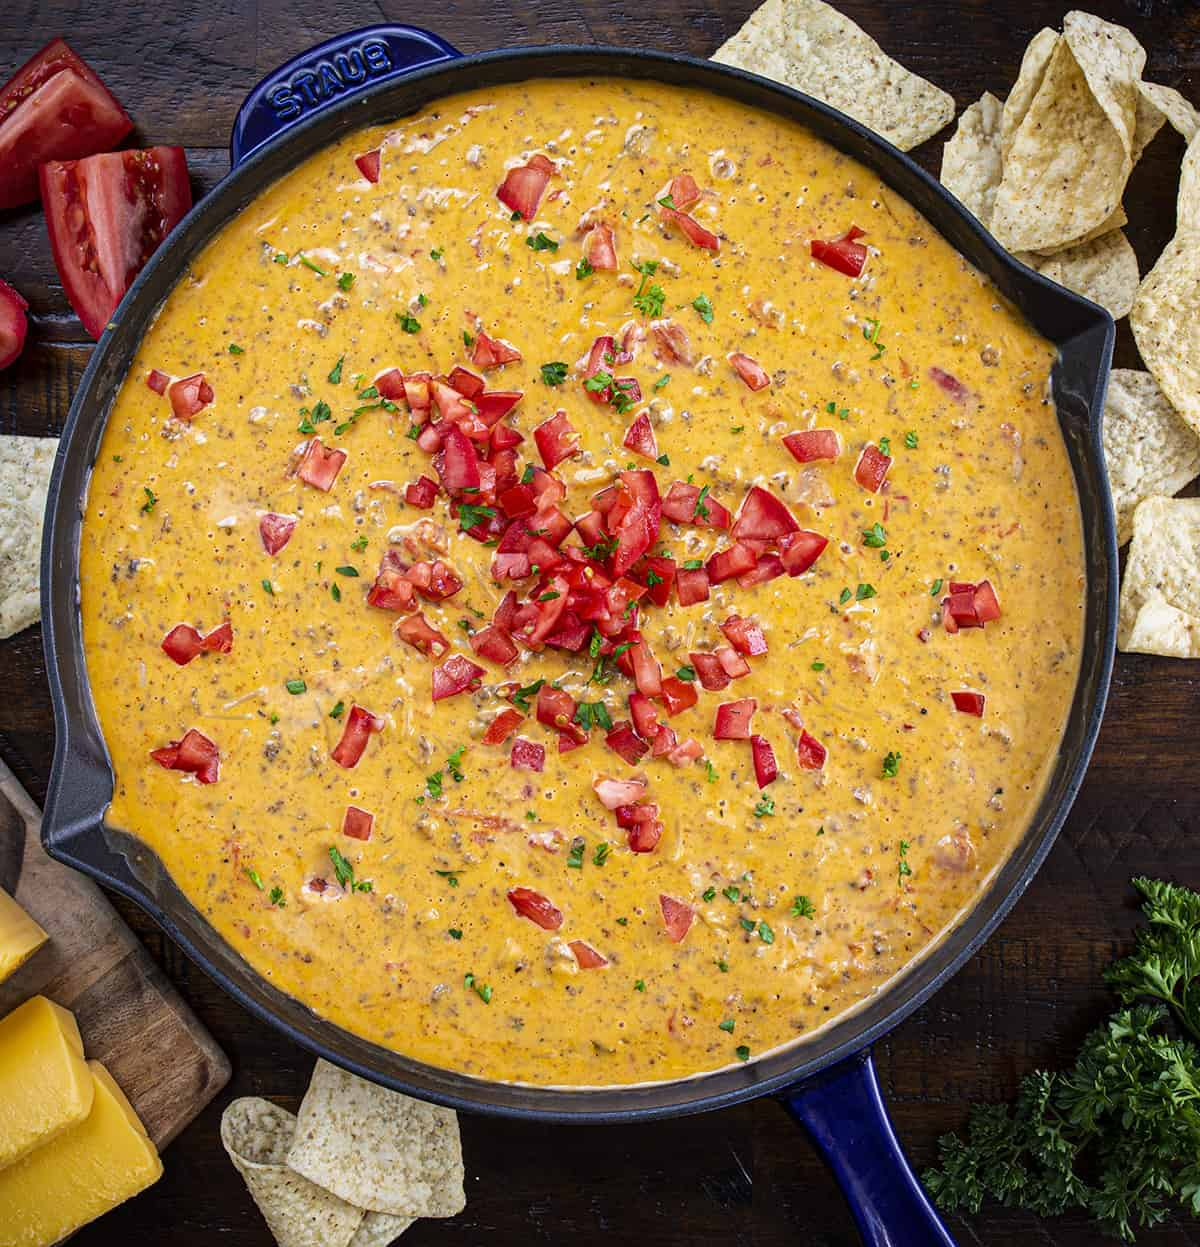 Cheesy Hamburger Rice Dip From Overhead in a Blue Skillet on a Cutting Board